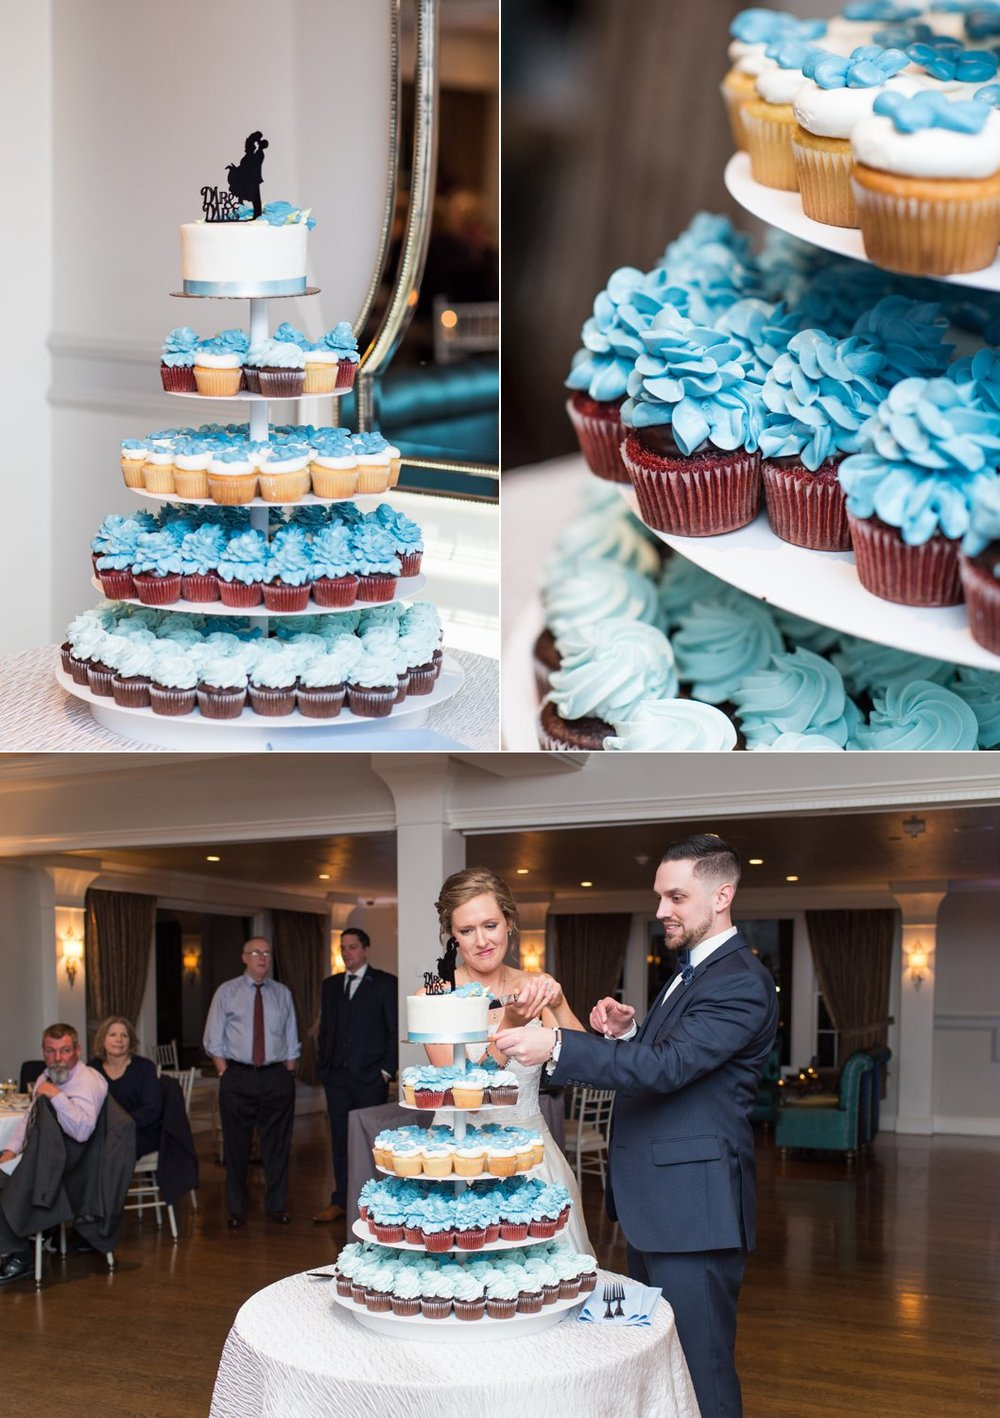 cupcakes from Dessert Works  and cake cutting by bride and groom